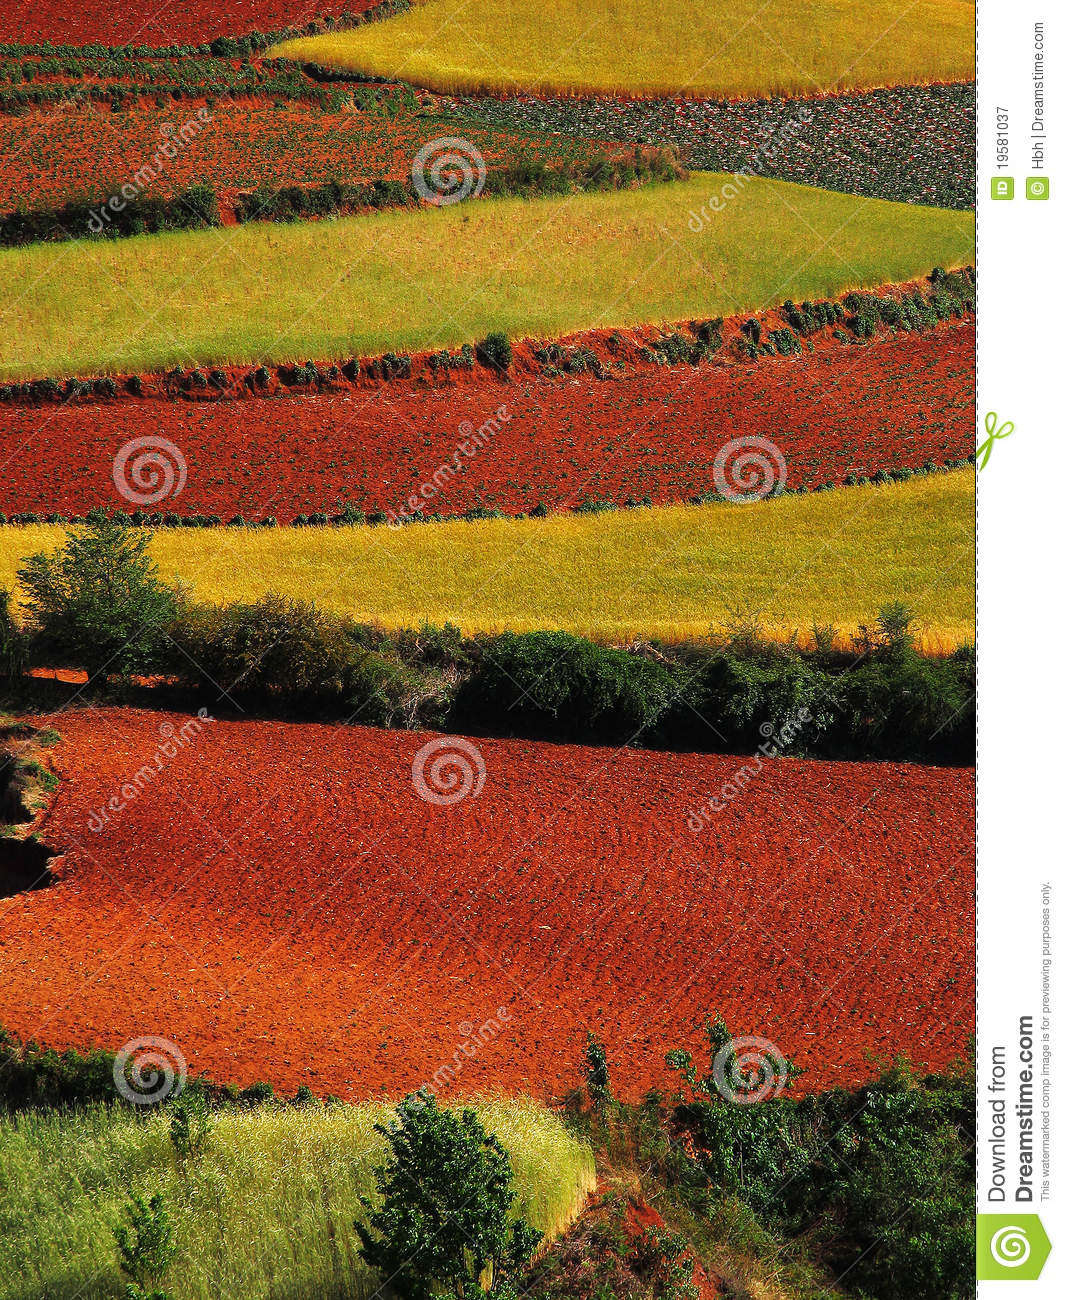 Yunnan red soil dry royalty free stock photography image for What does soil contain